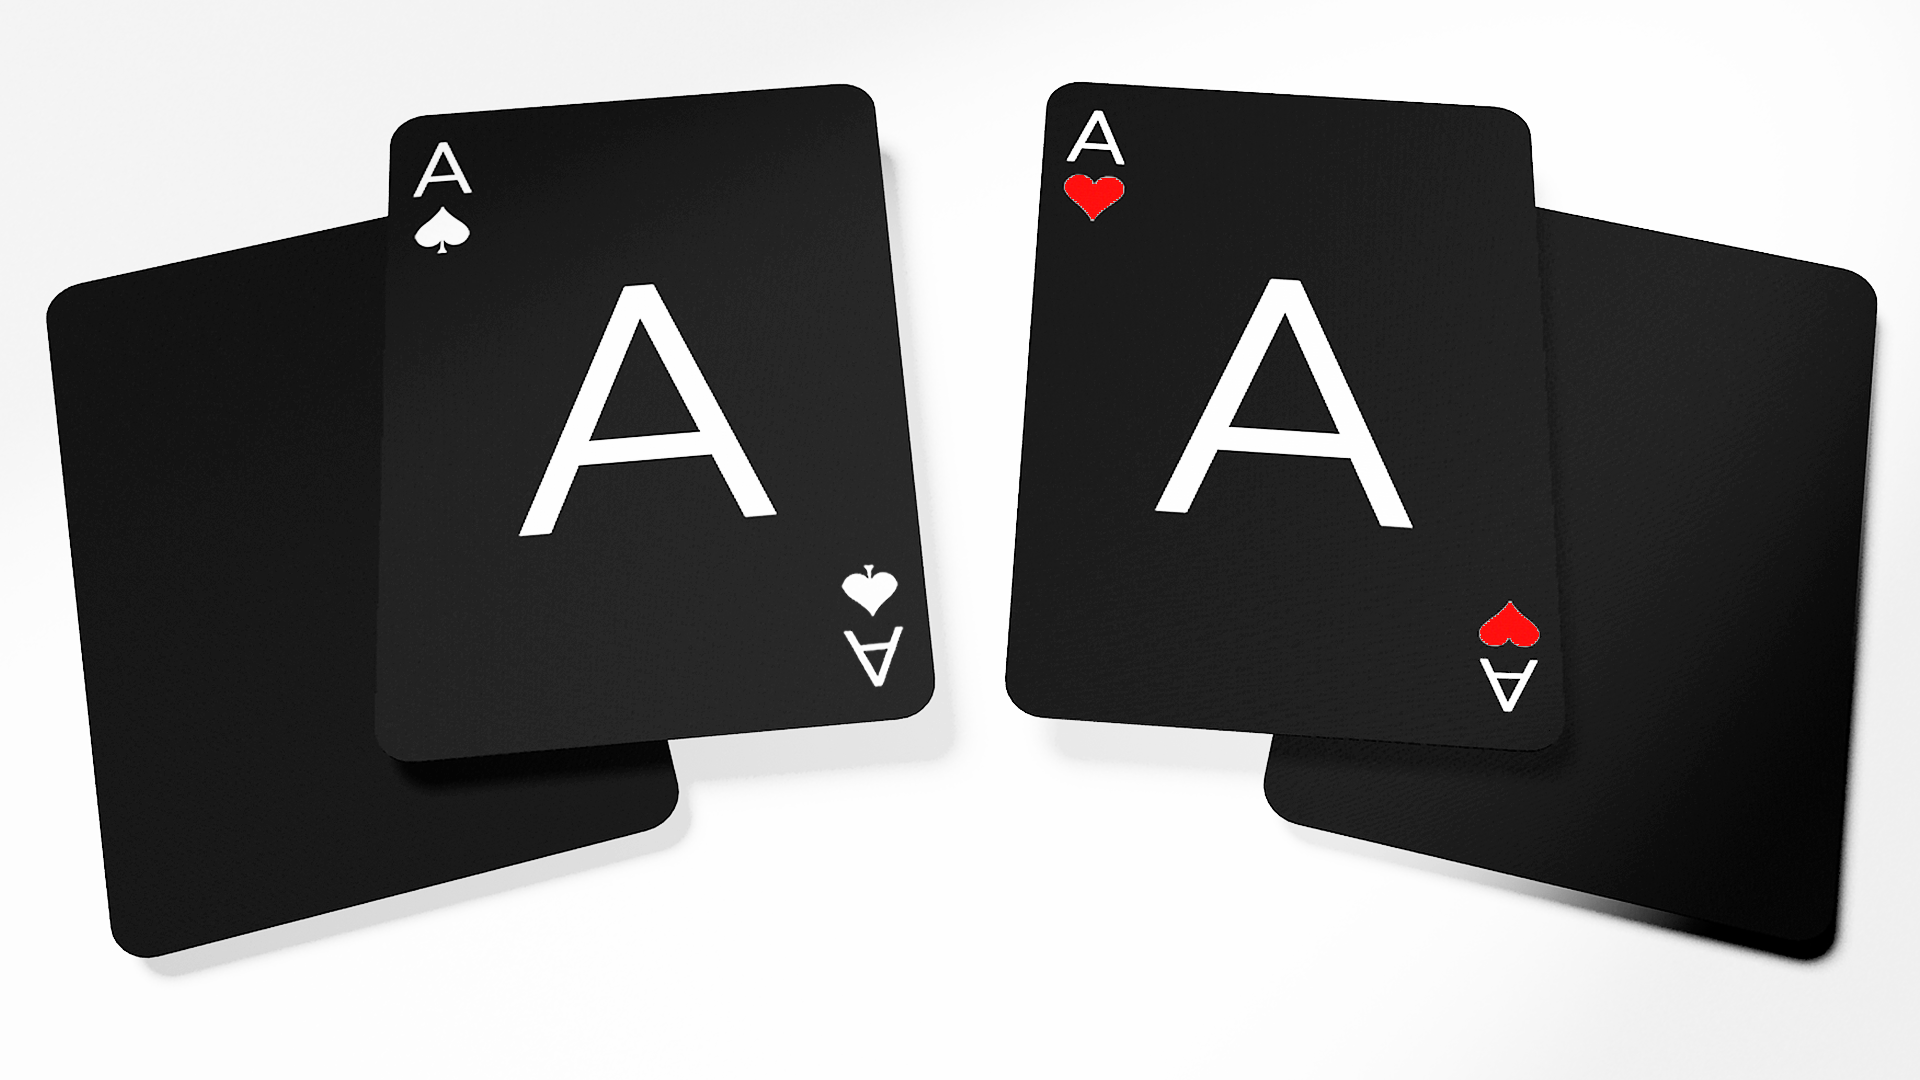 playing cards png hd transparent playing cards hd images. | pluspng